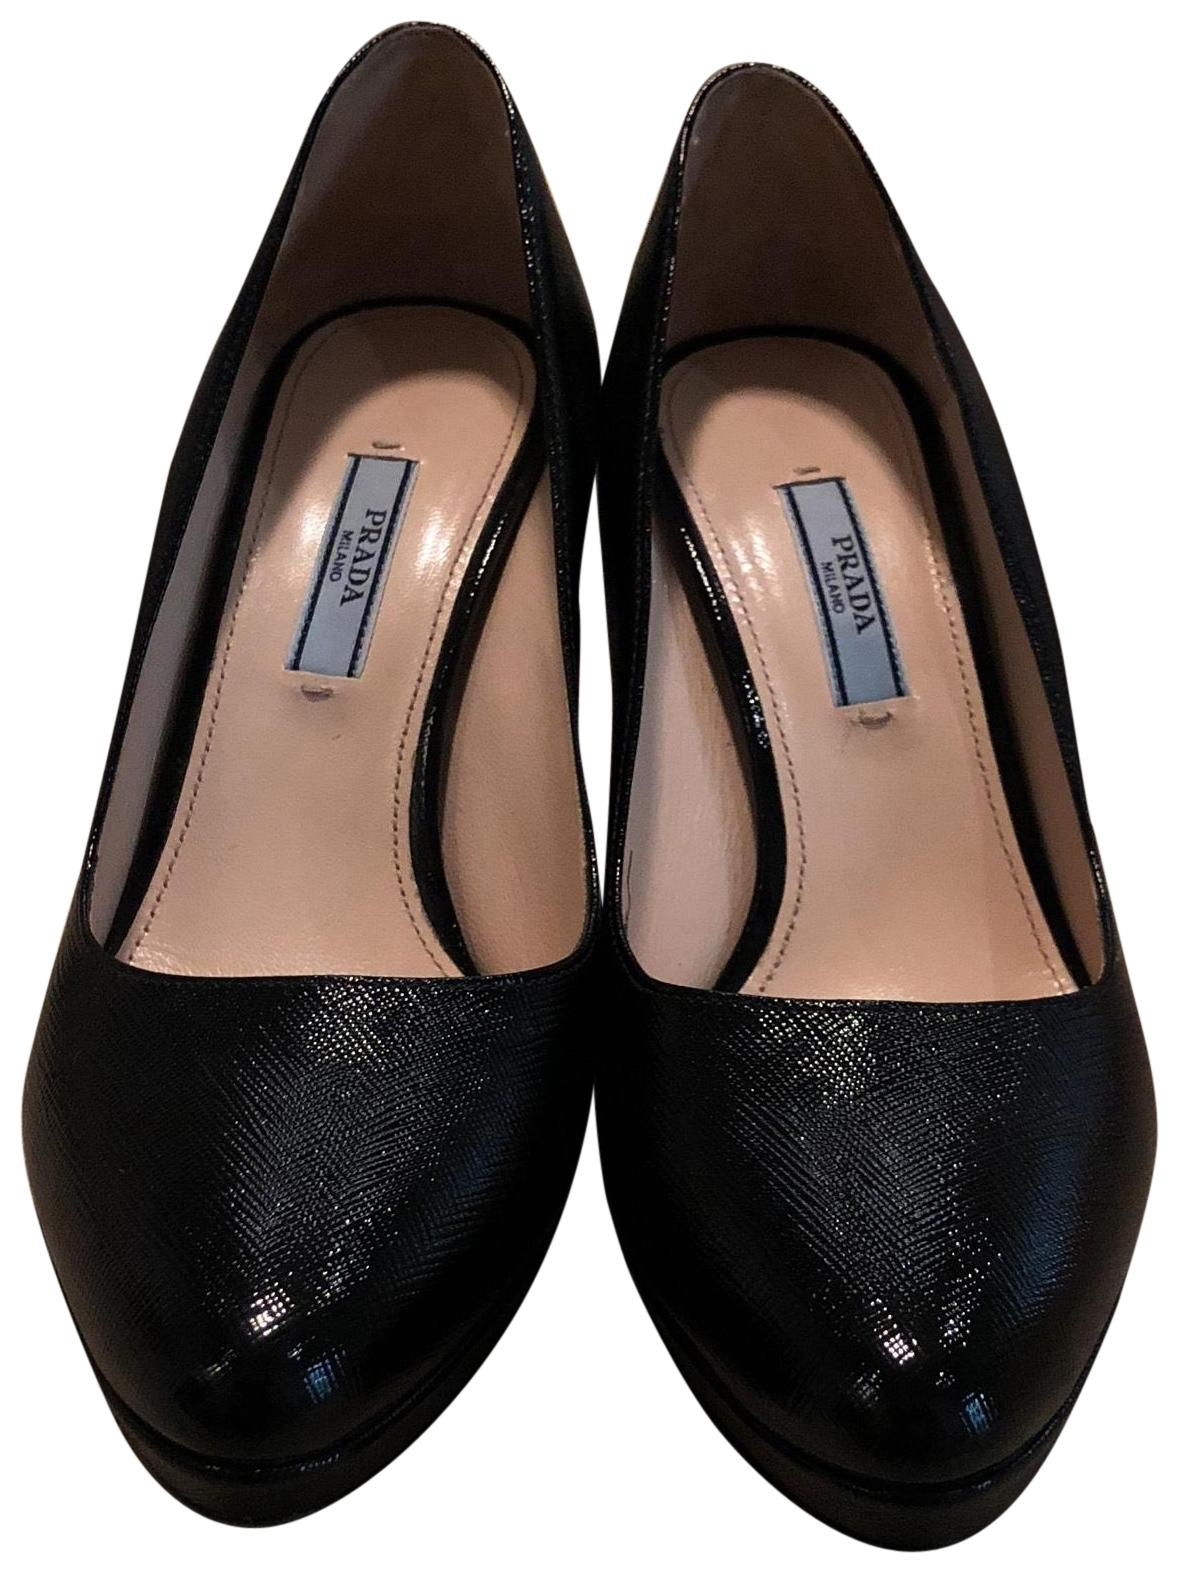 new arrival online buy cheap shop Prada Leather Semi Pointed-Toe Pumps from china cheap price with mastercard sale online PTTNX